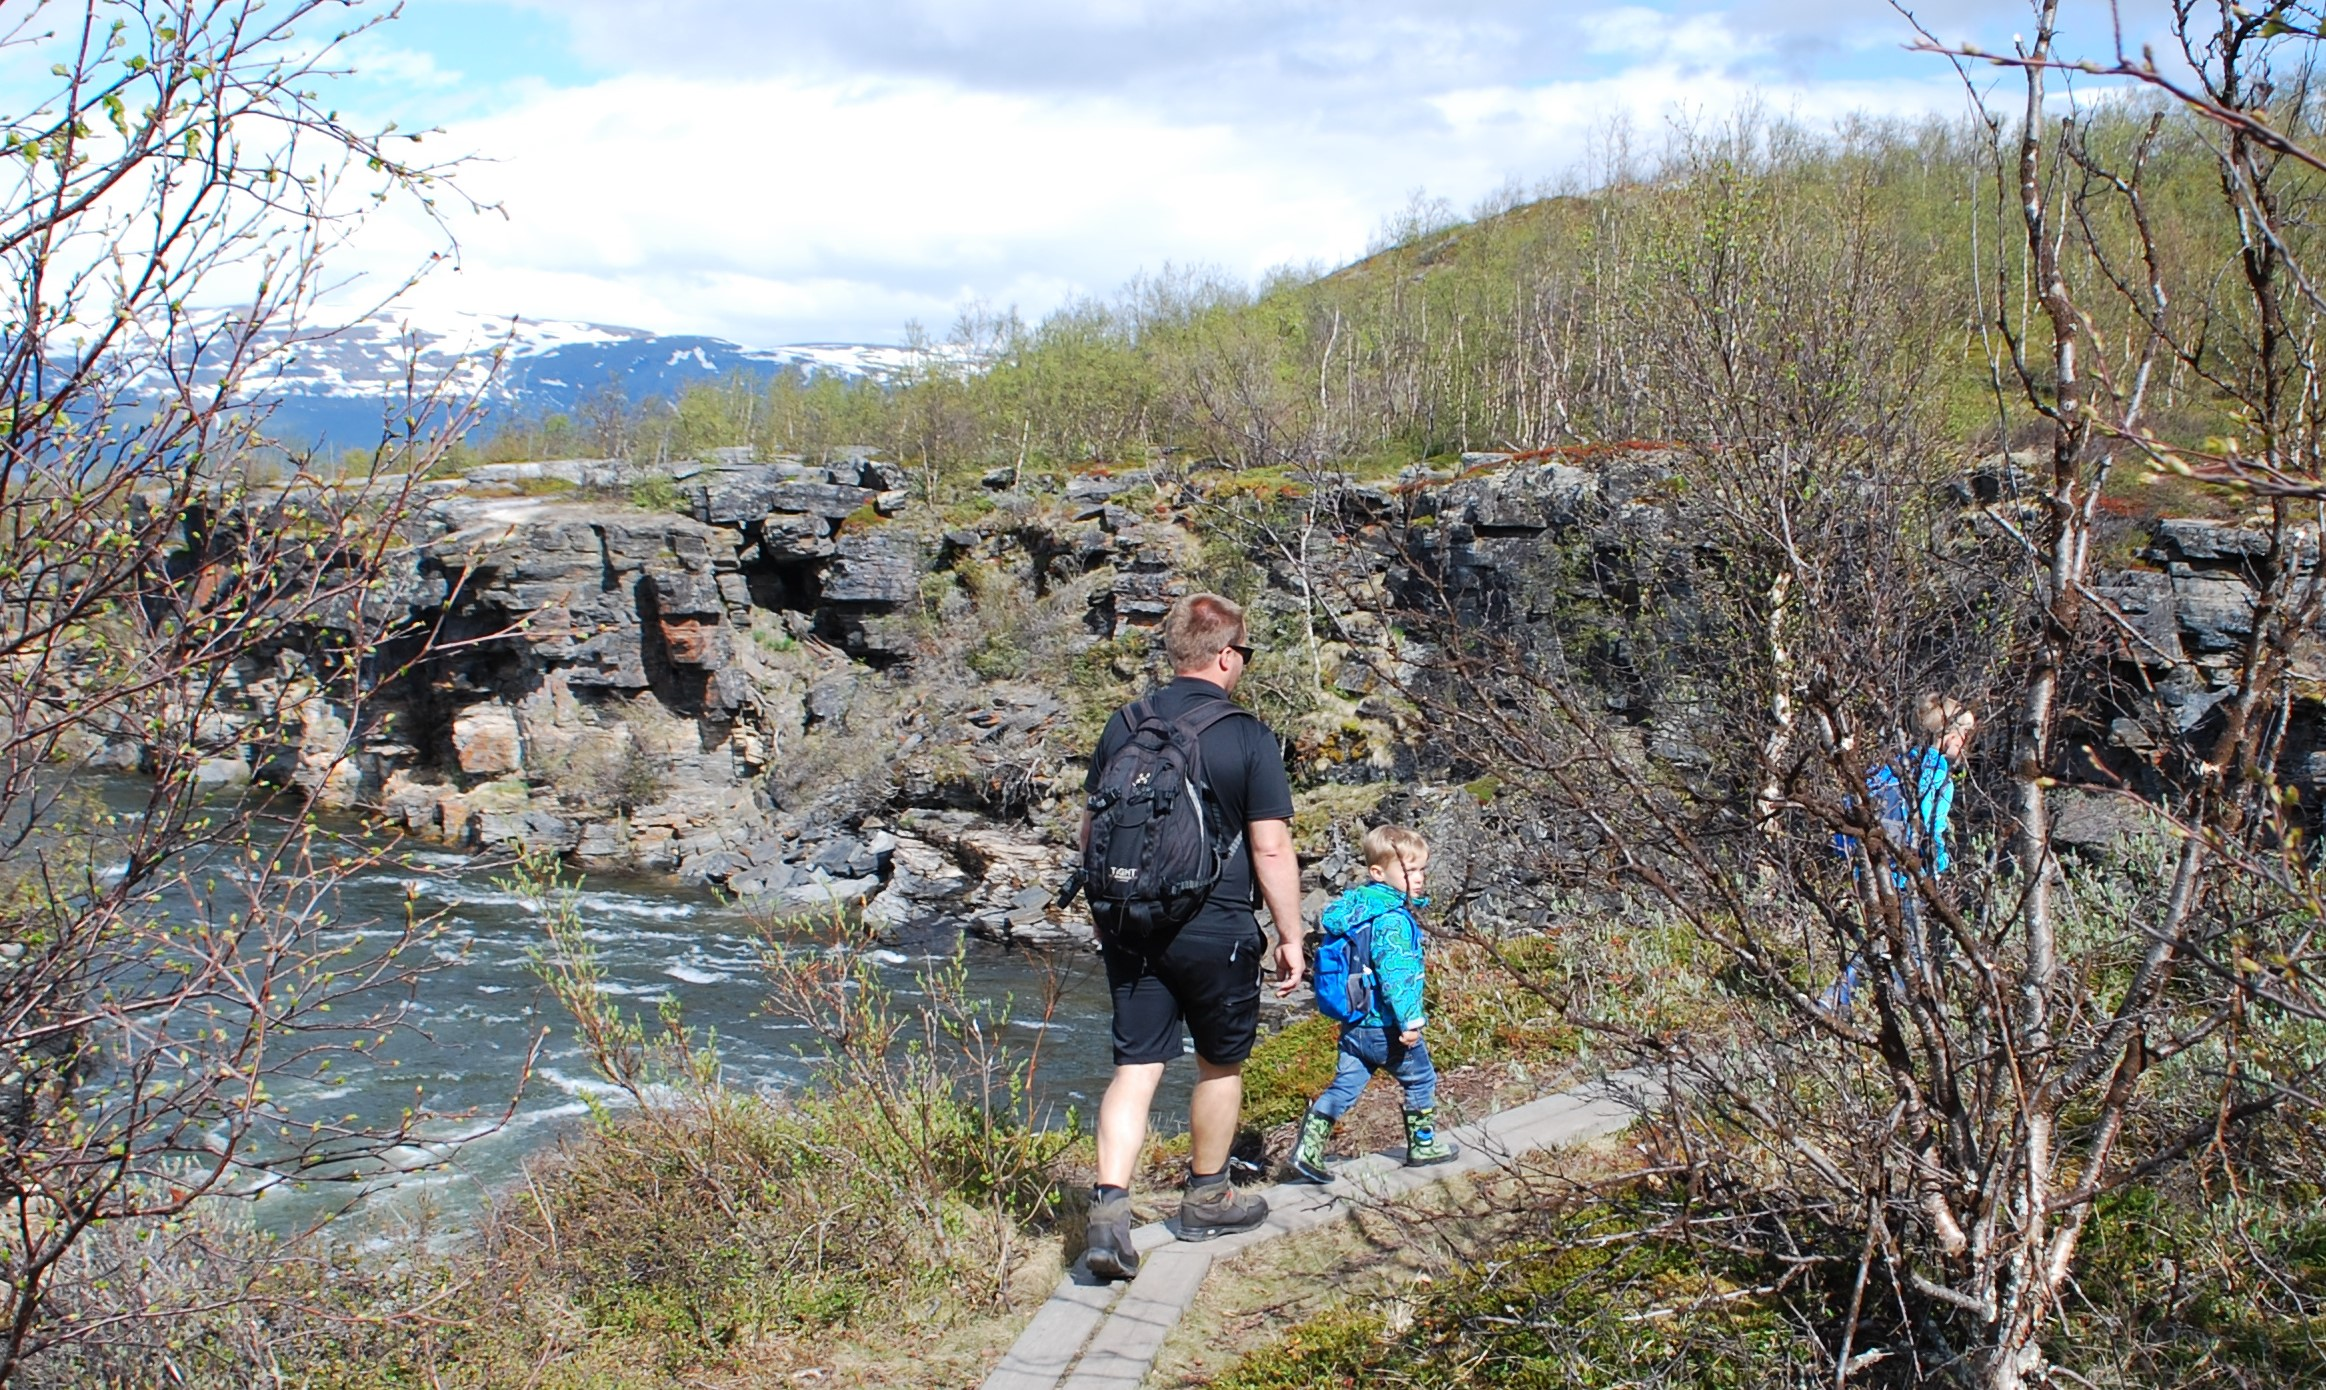 Figure 4 Abisko National park (Source: Linda Stihl)